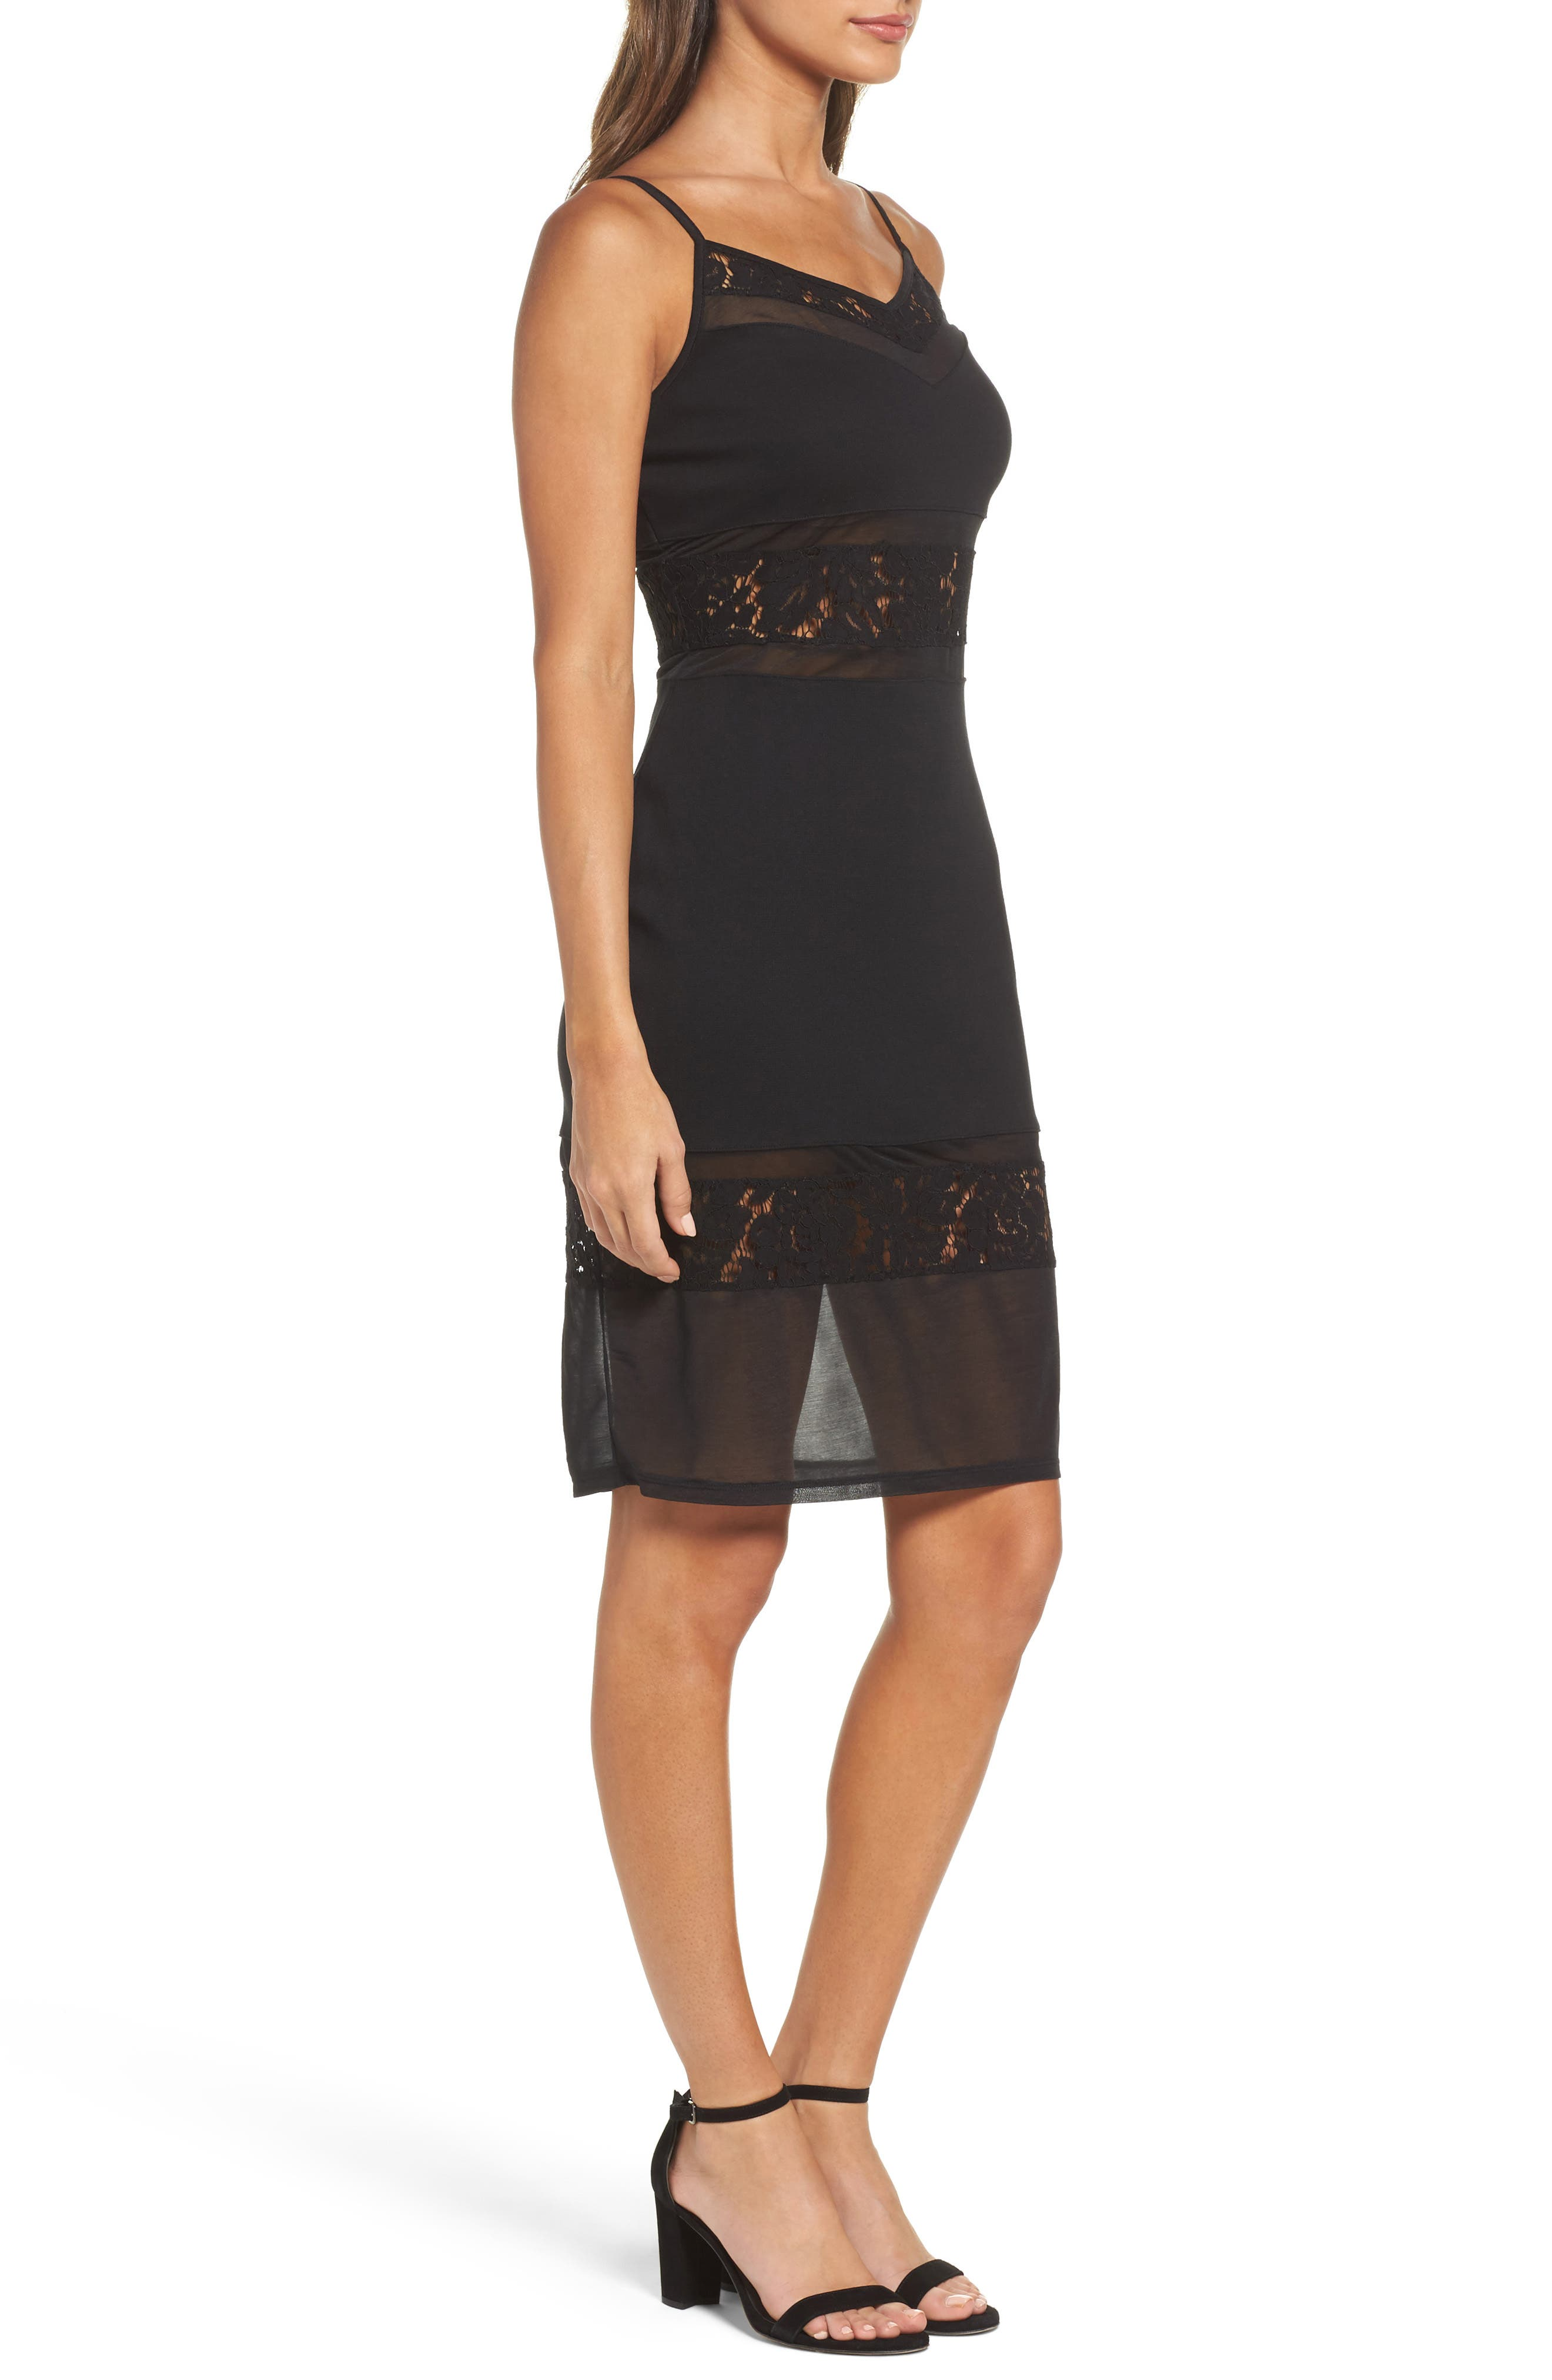 Lucky Layer Embroidered Mesh Sheath Dress,                             Alternate thumbnail 3, color,                             Black